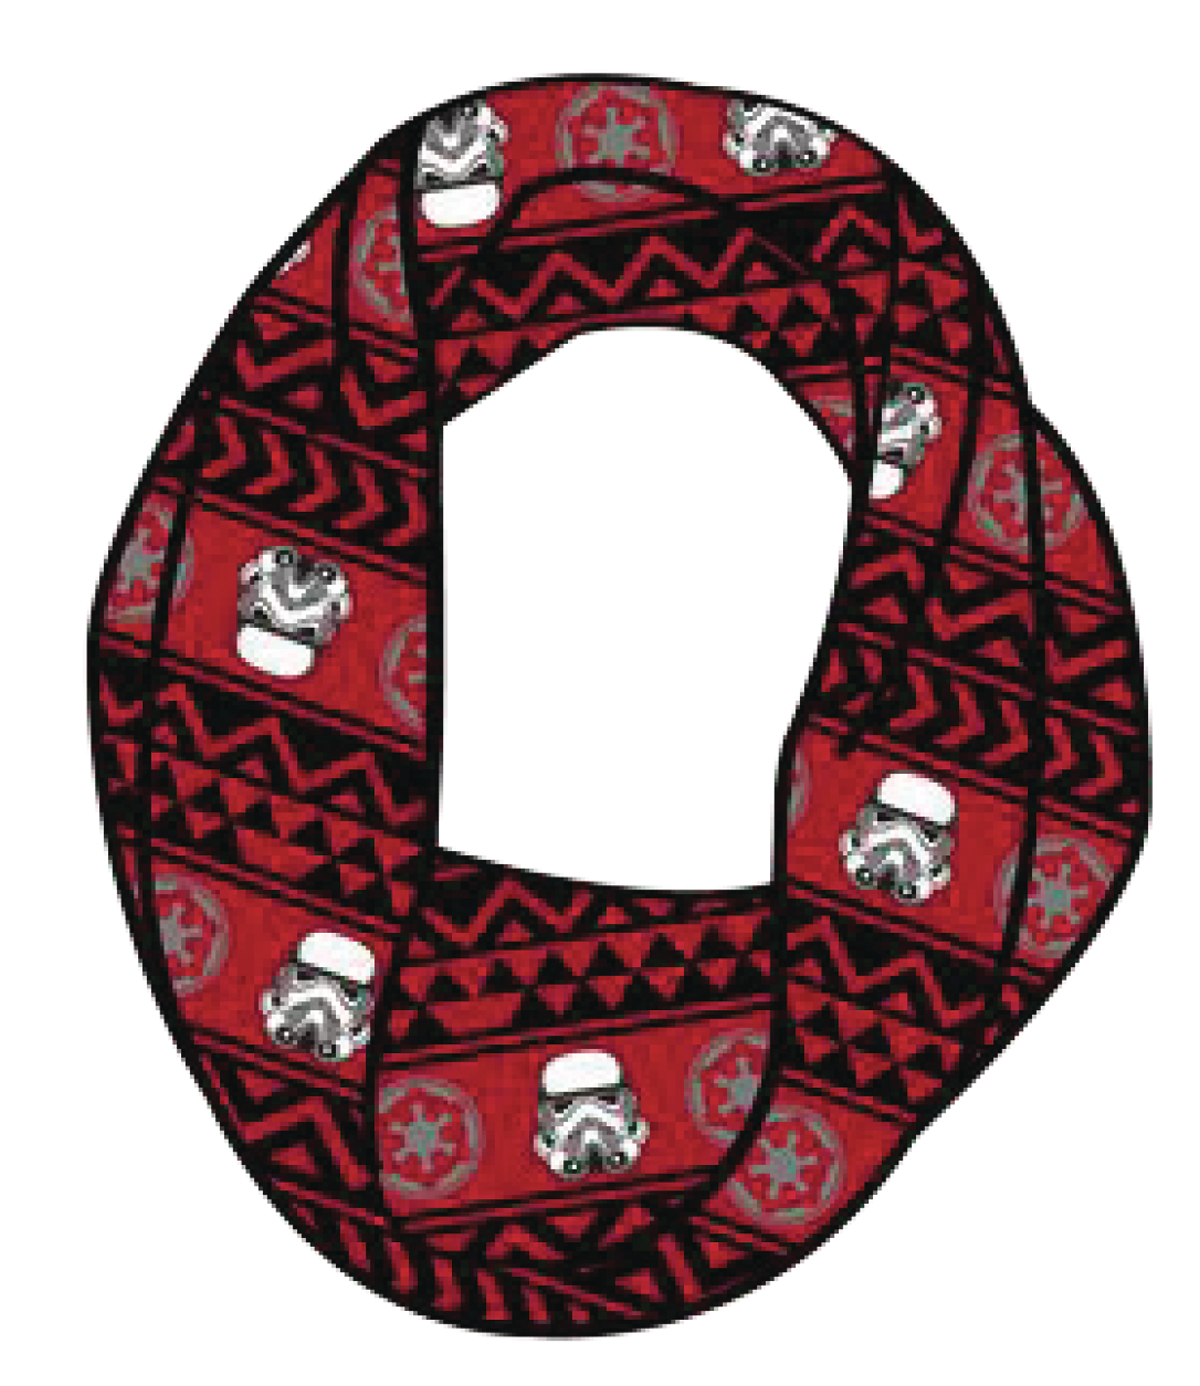 STAR WARS STORMTROOPER AZTEC SUBLIMATED INFINITY SCARF